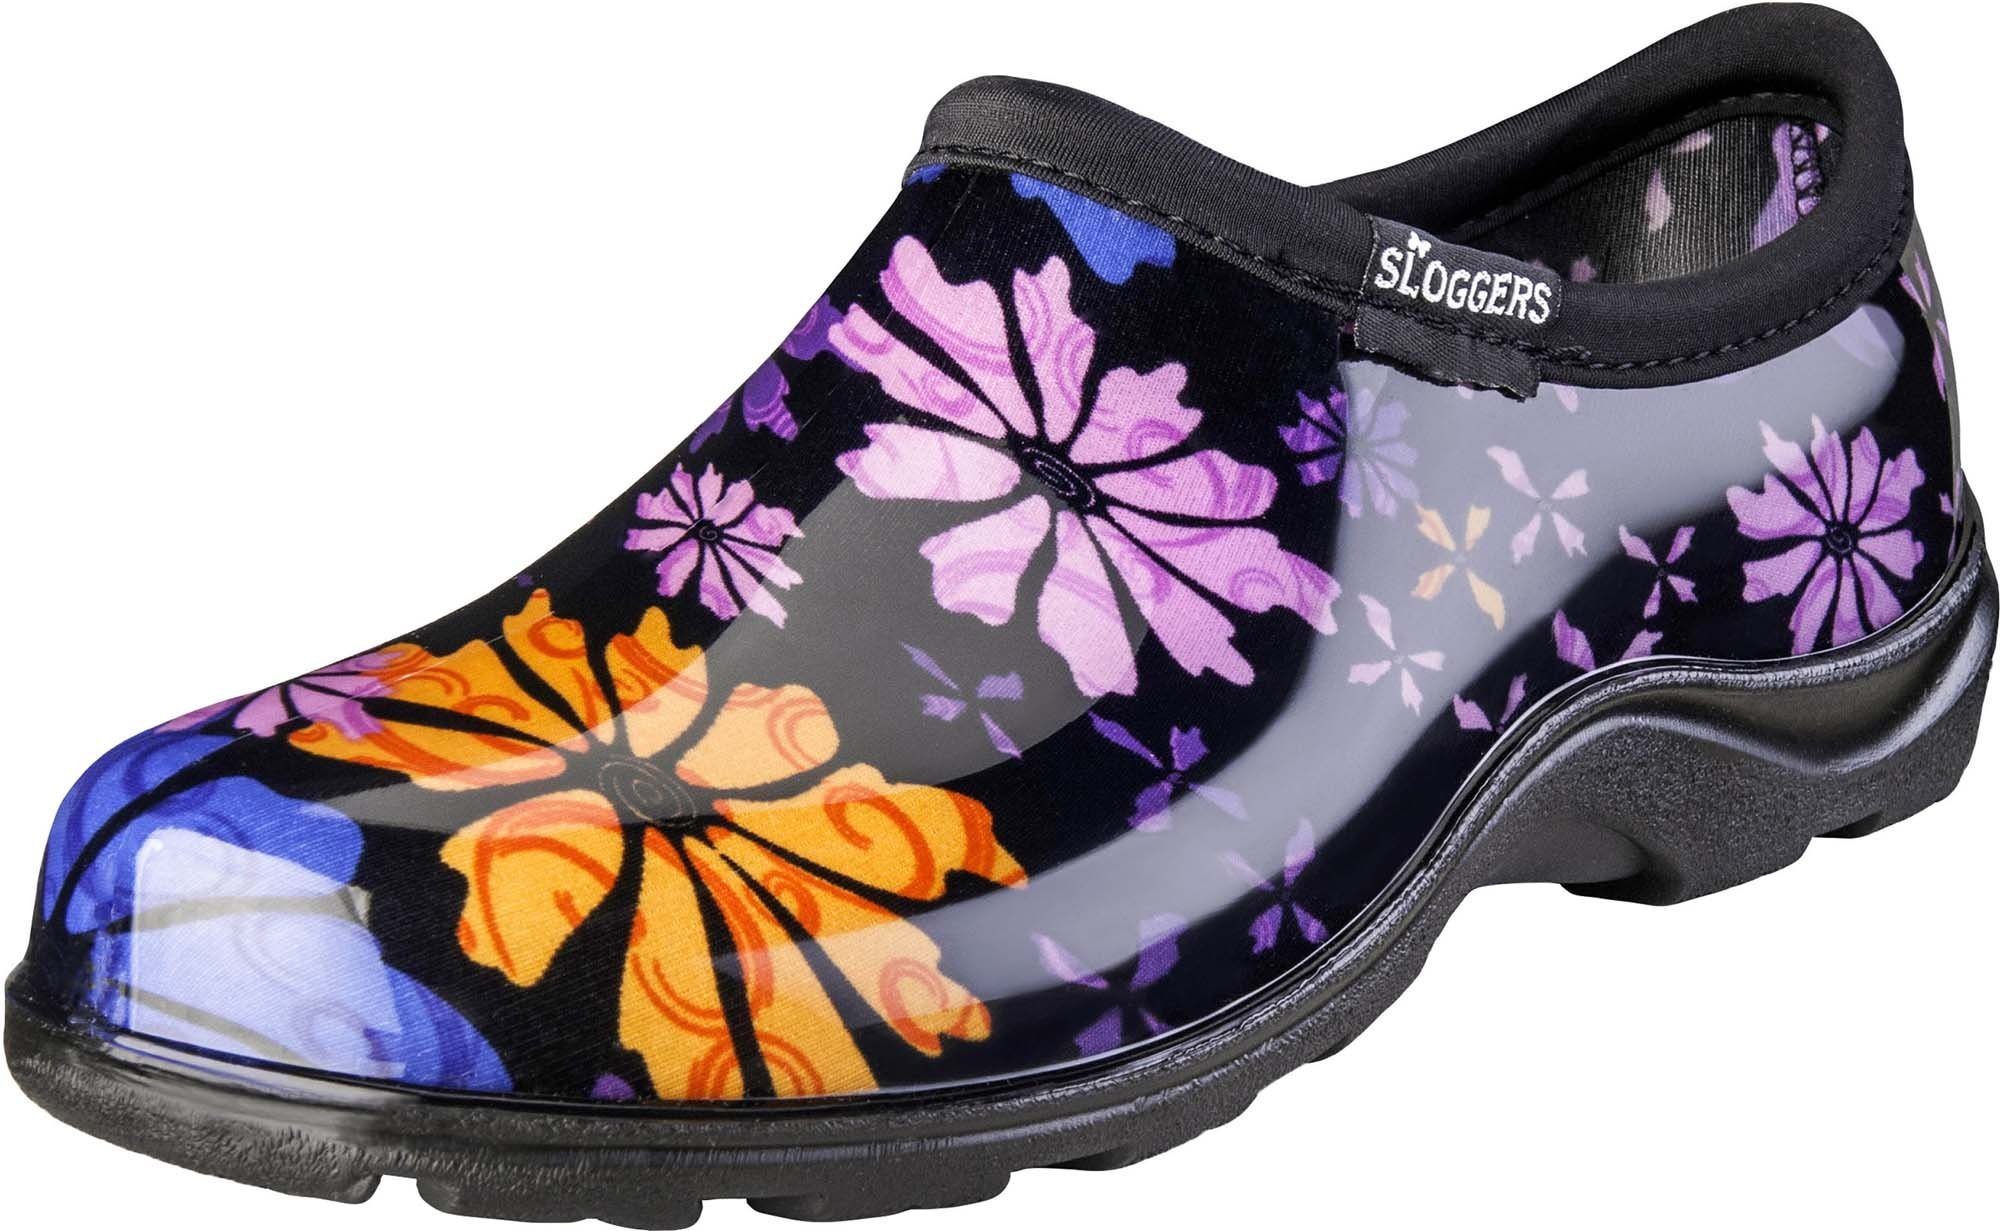 Sloggers Women's Waterproof  Rain and Garden Shoe with Comfort Insole, Flower Power, Size 6, Style 5116FP06